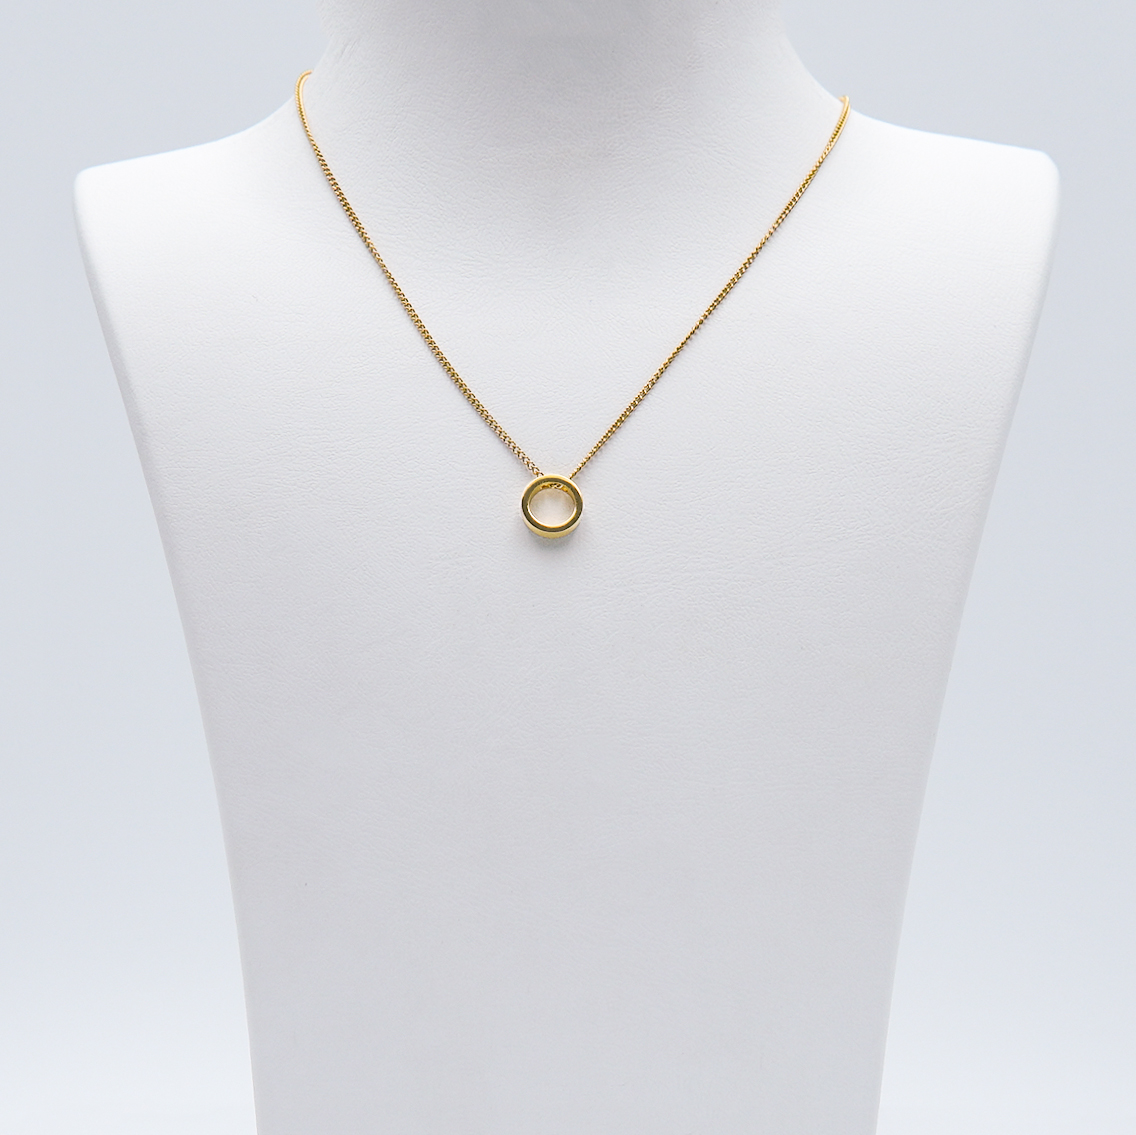 5- Just For You Gold Edition Halsband Modern and trendy Necklace and women jewelry and accessories from SWEVALI fashion Sweden